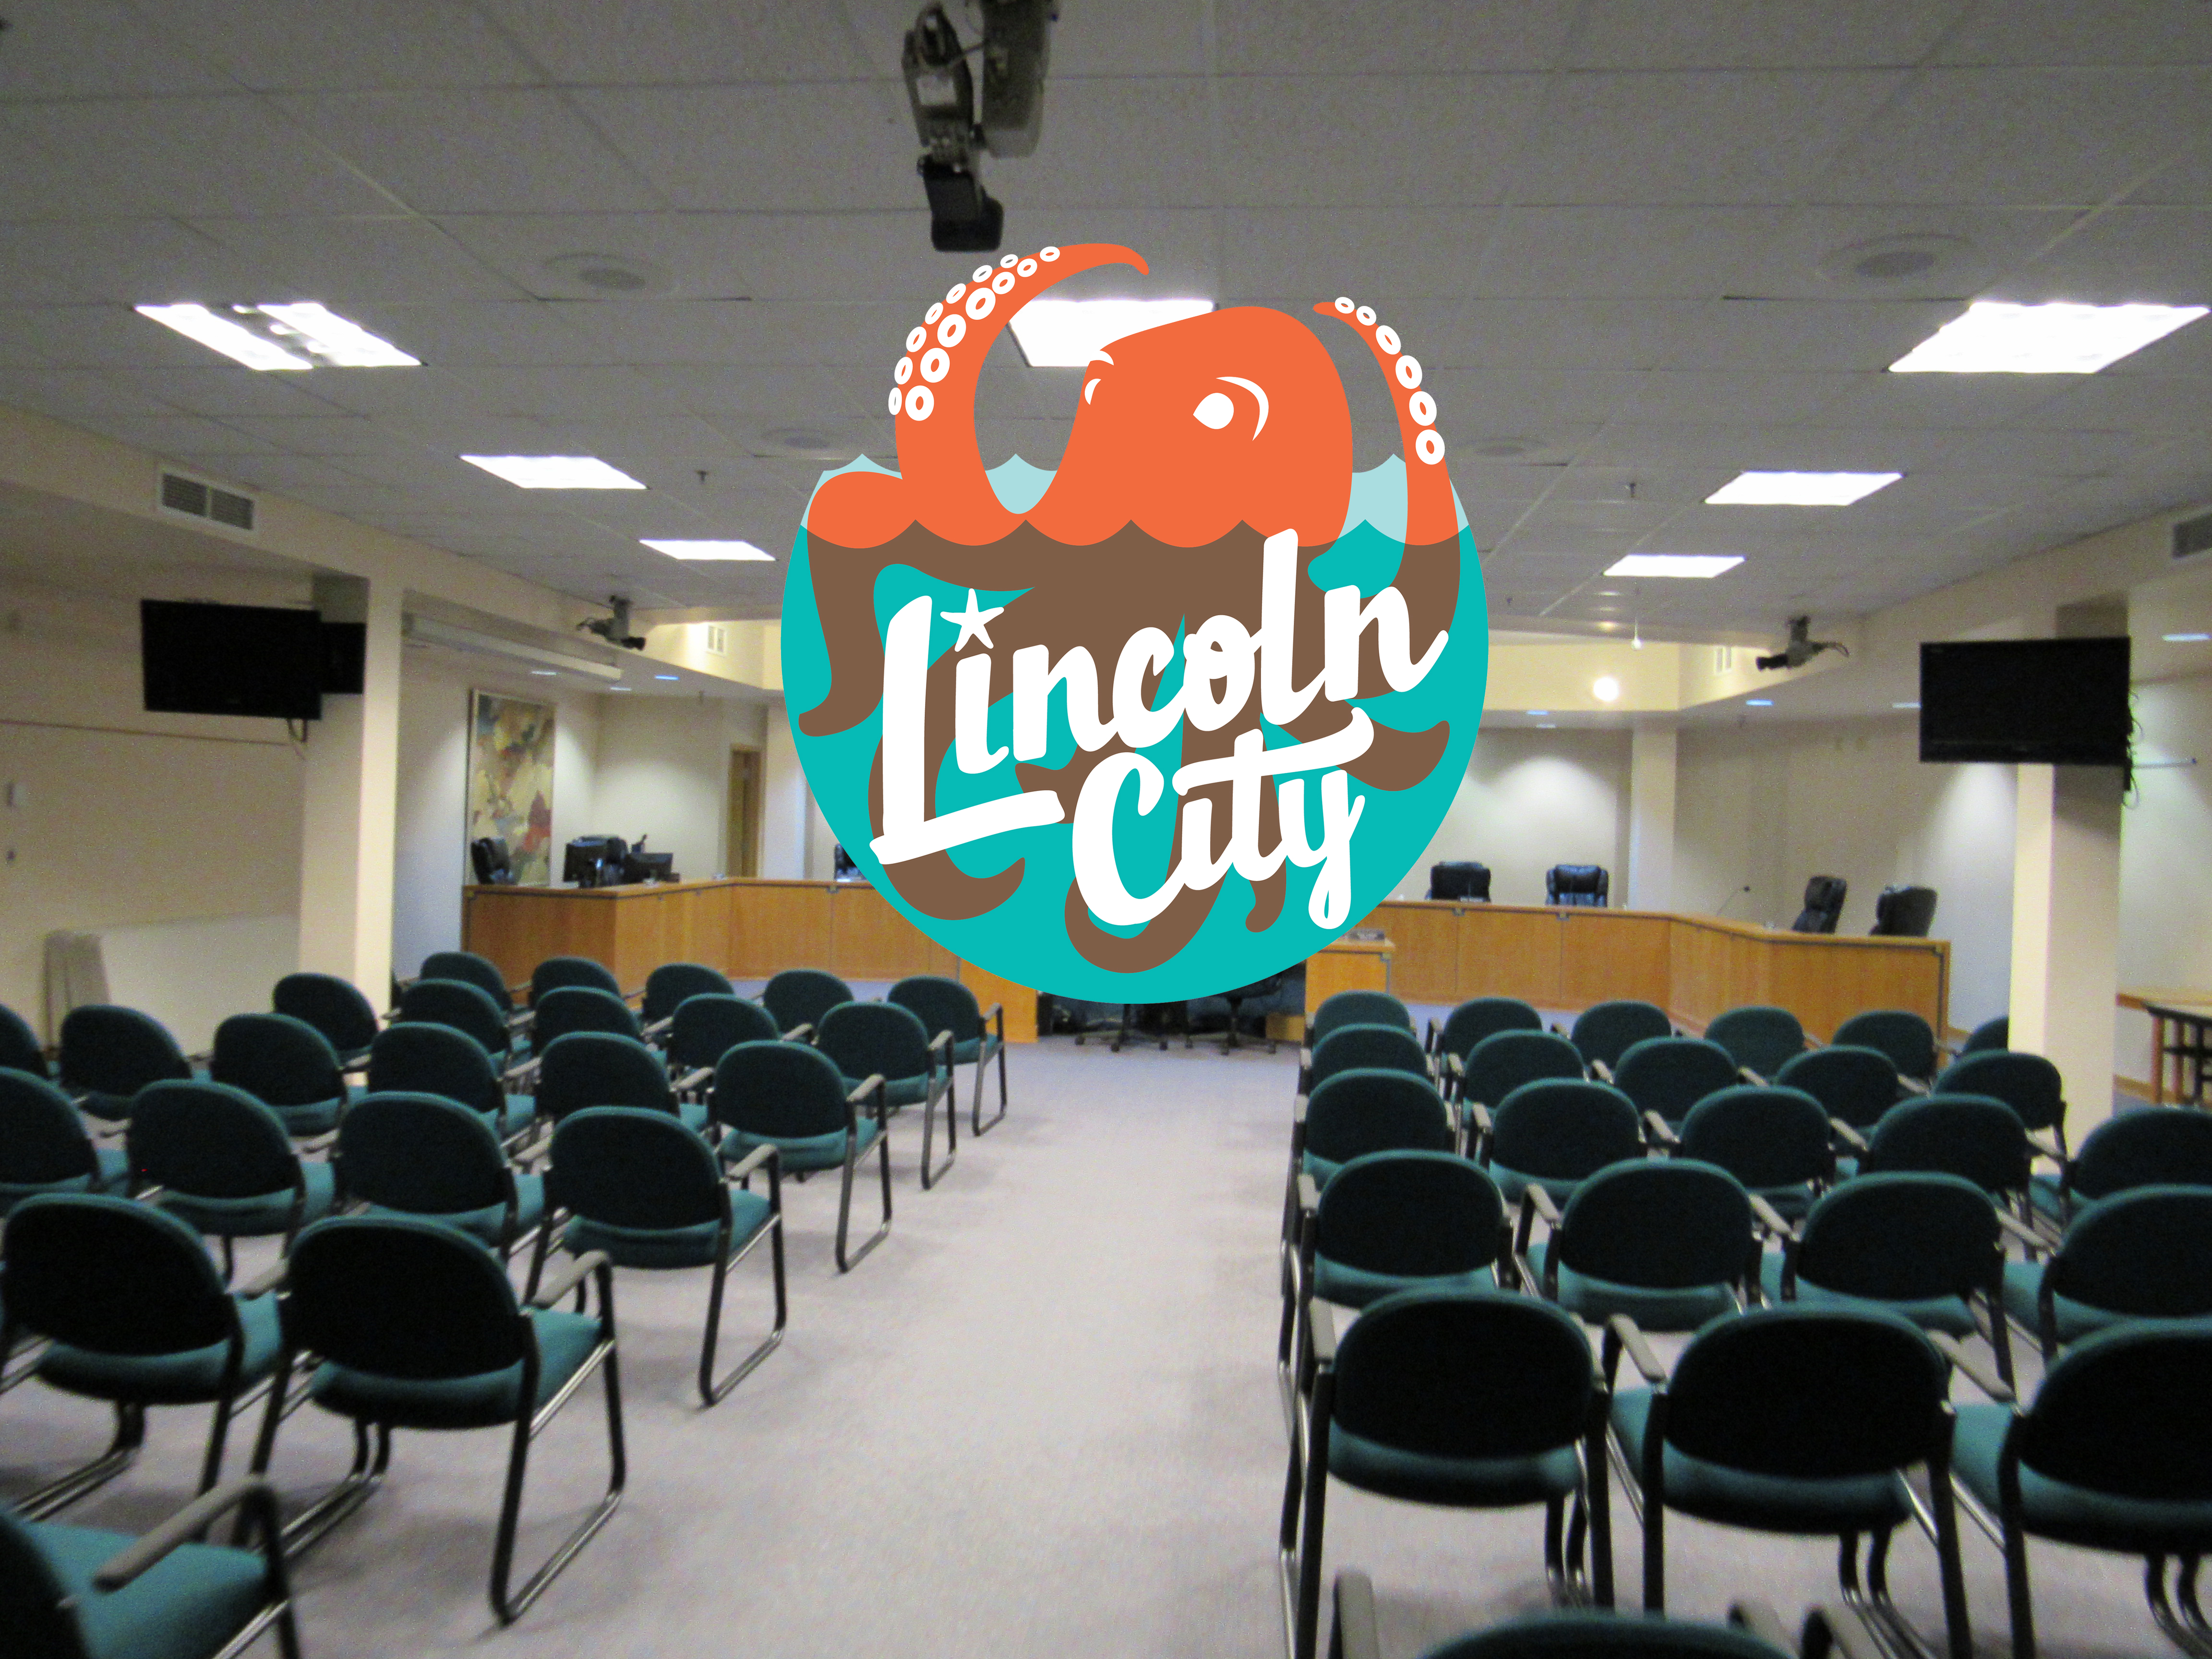 Lincoln City public arts committee